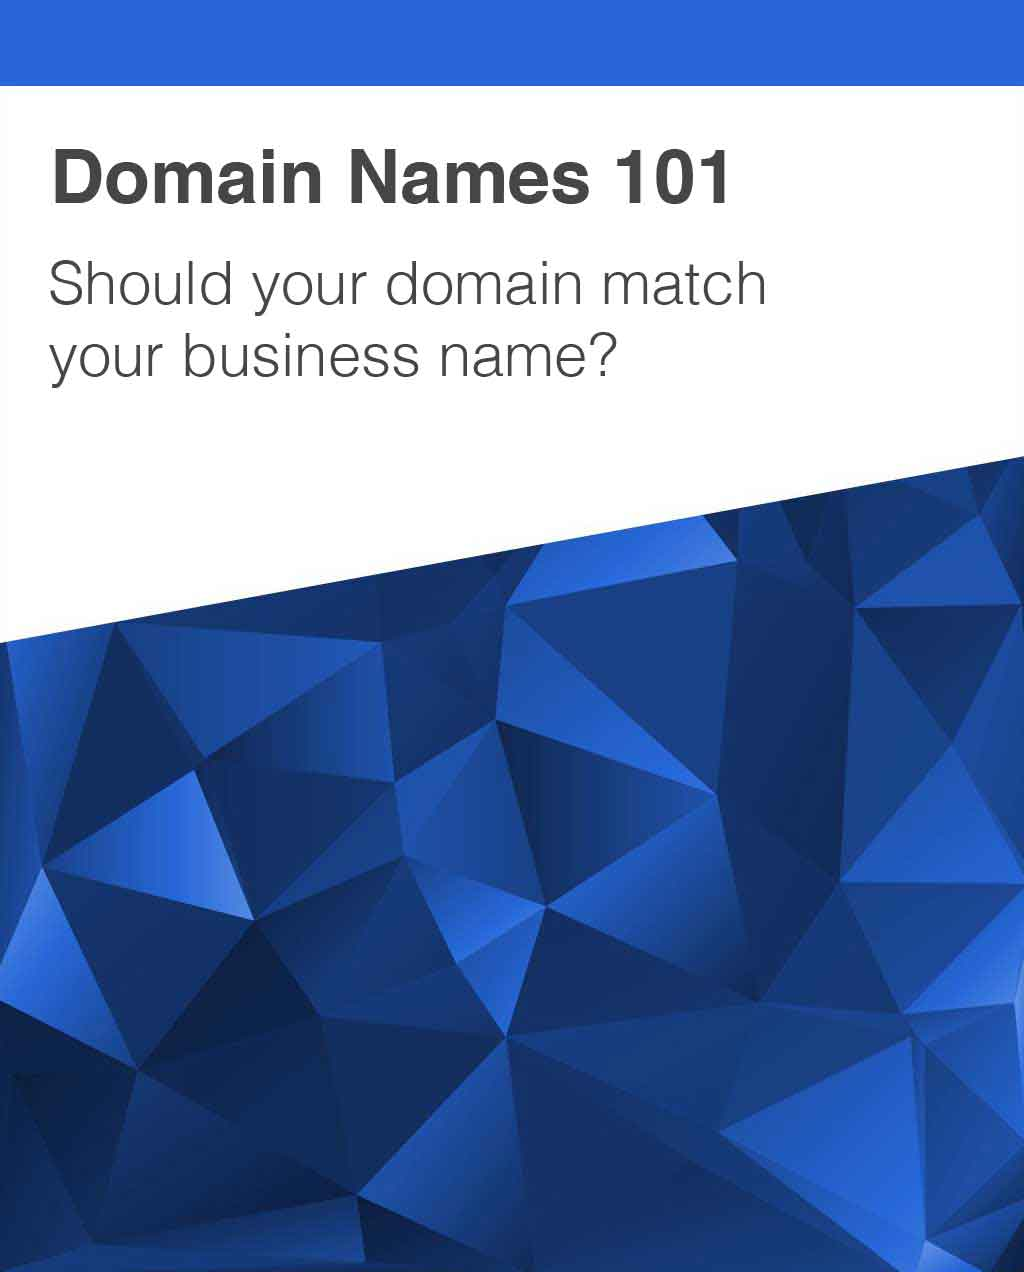 Domain Name and Business Name